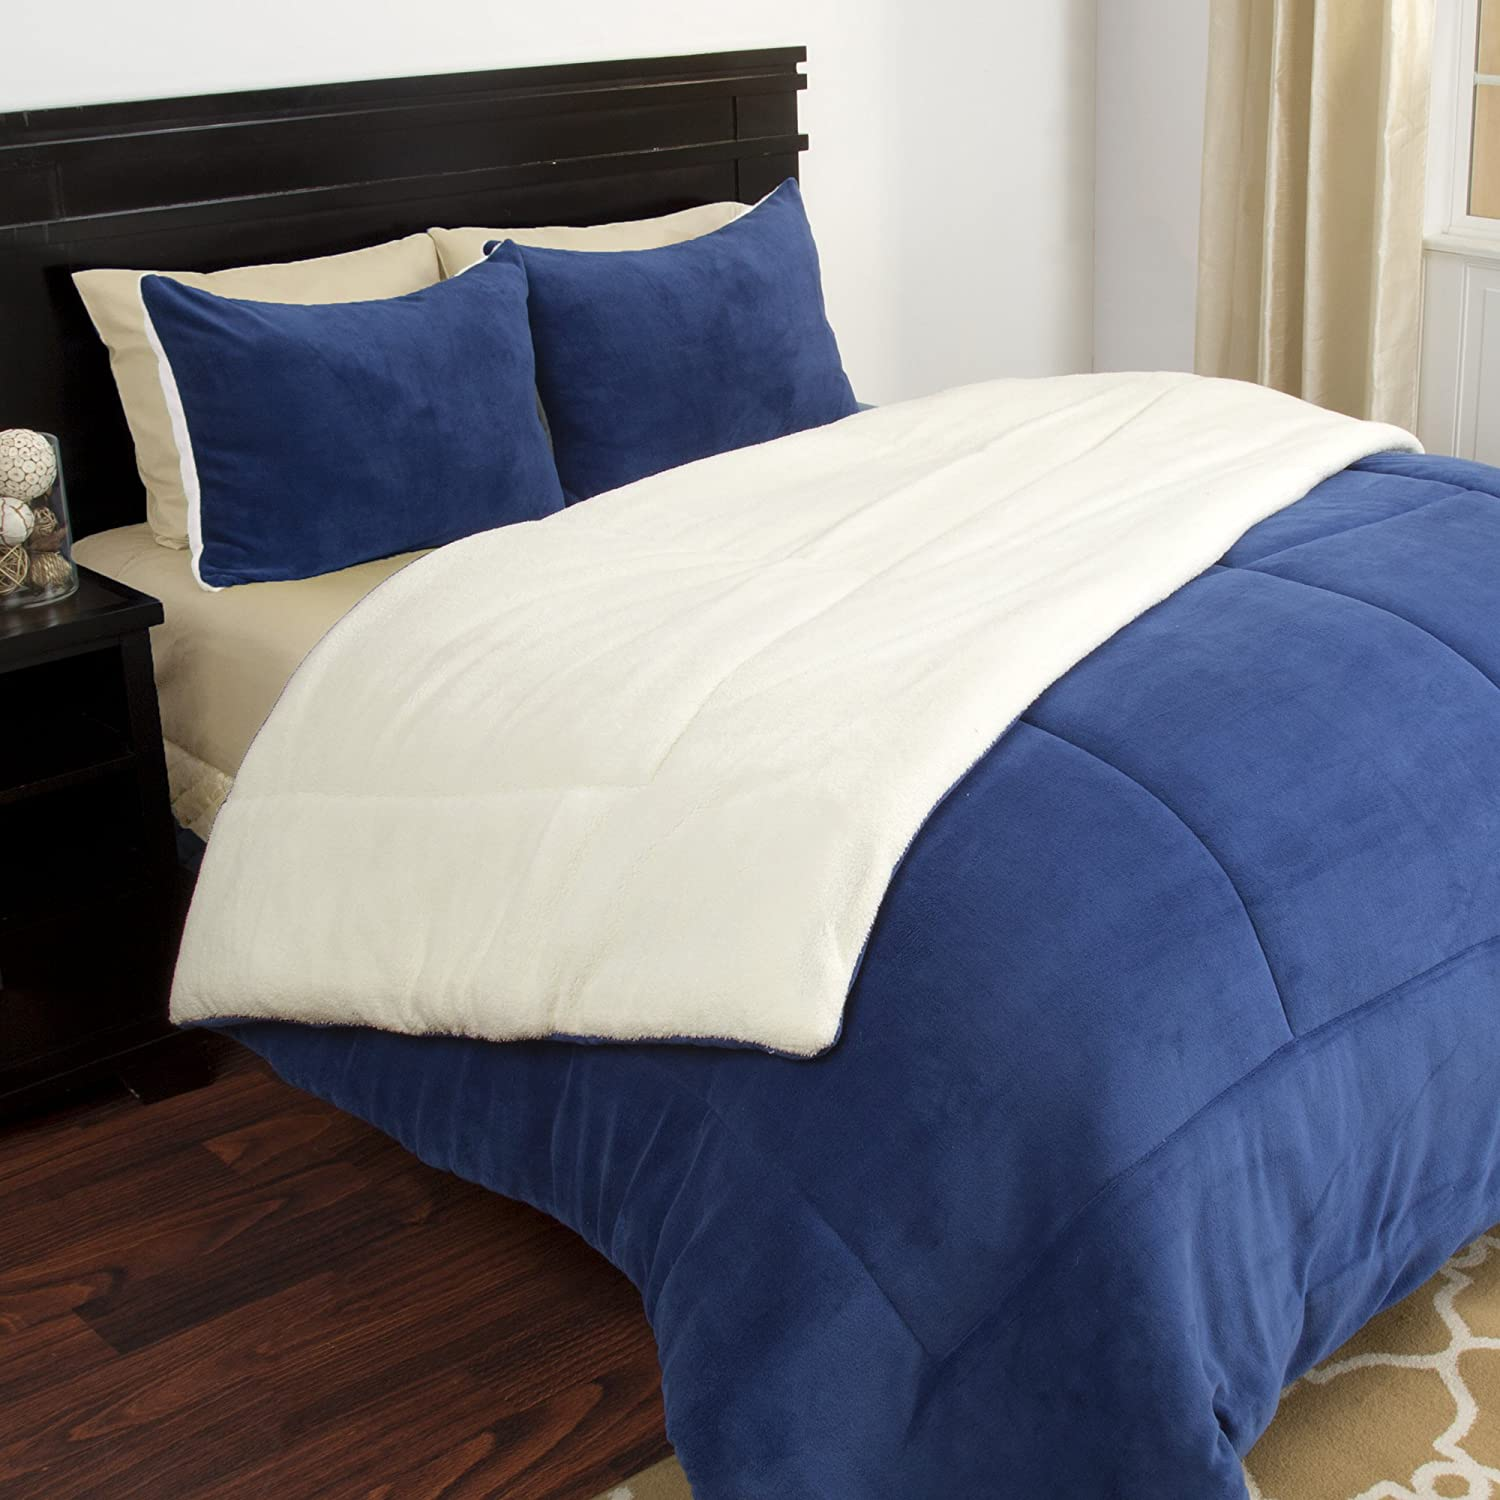 Lavish Home 3 Piece Sherpa/Fleece Comforter Set - F/Q - Navy